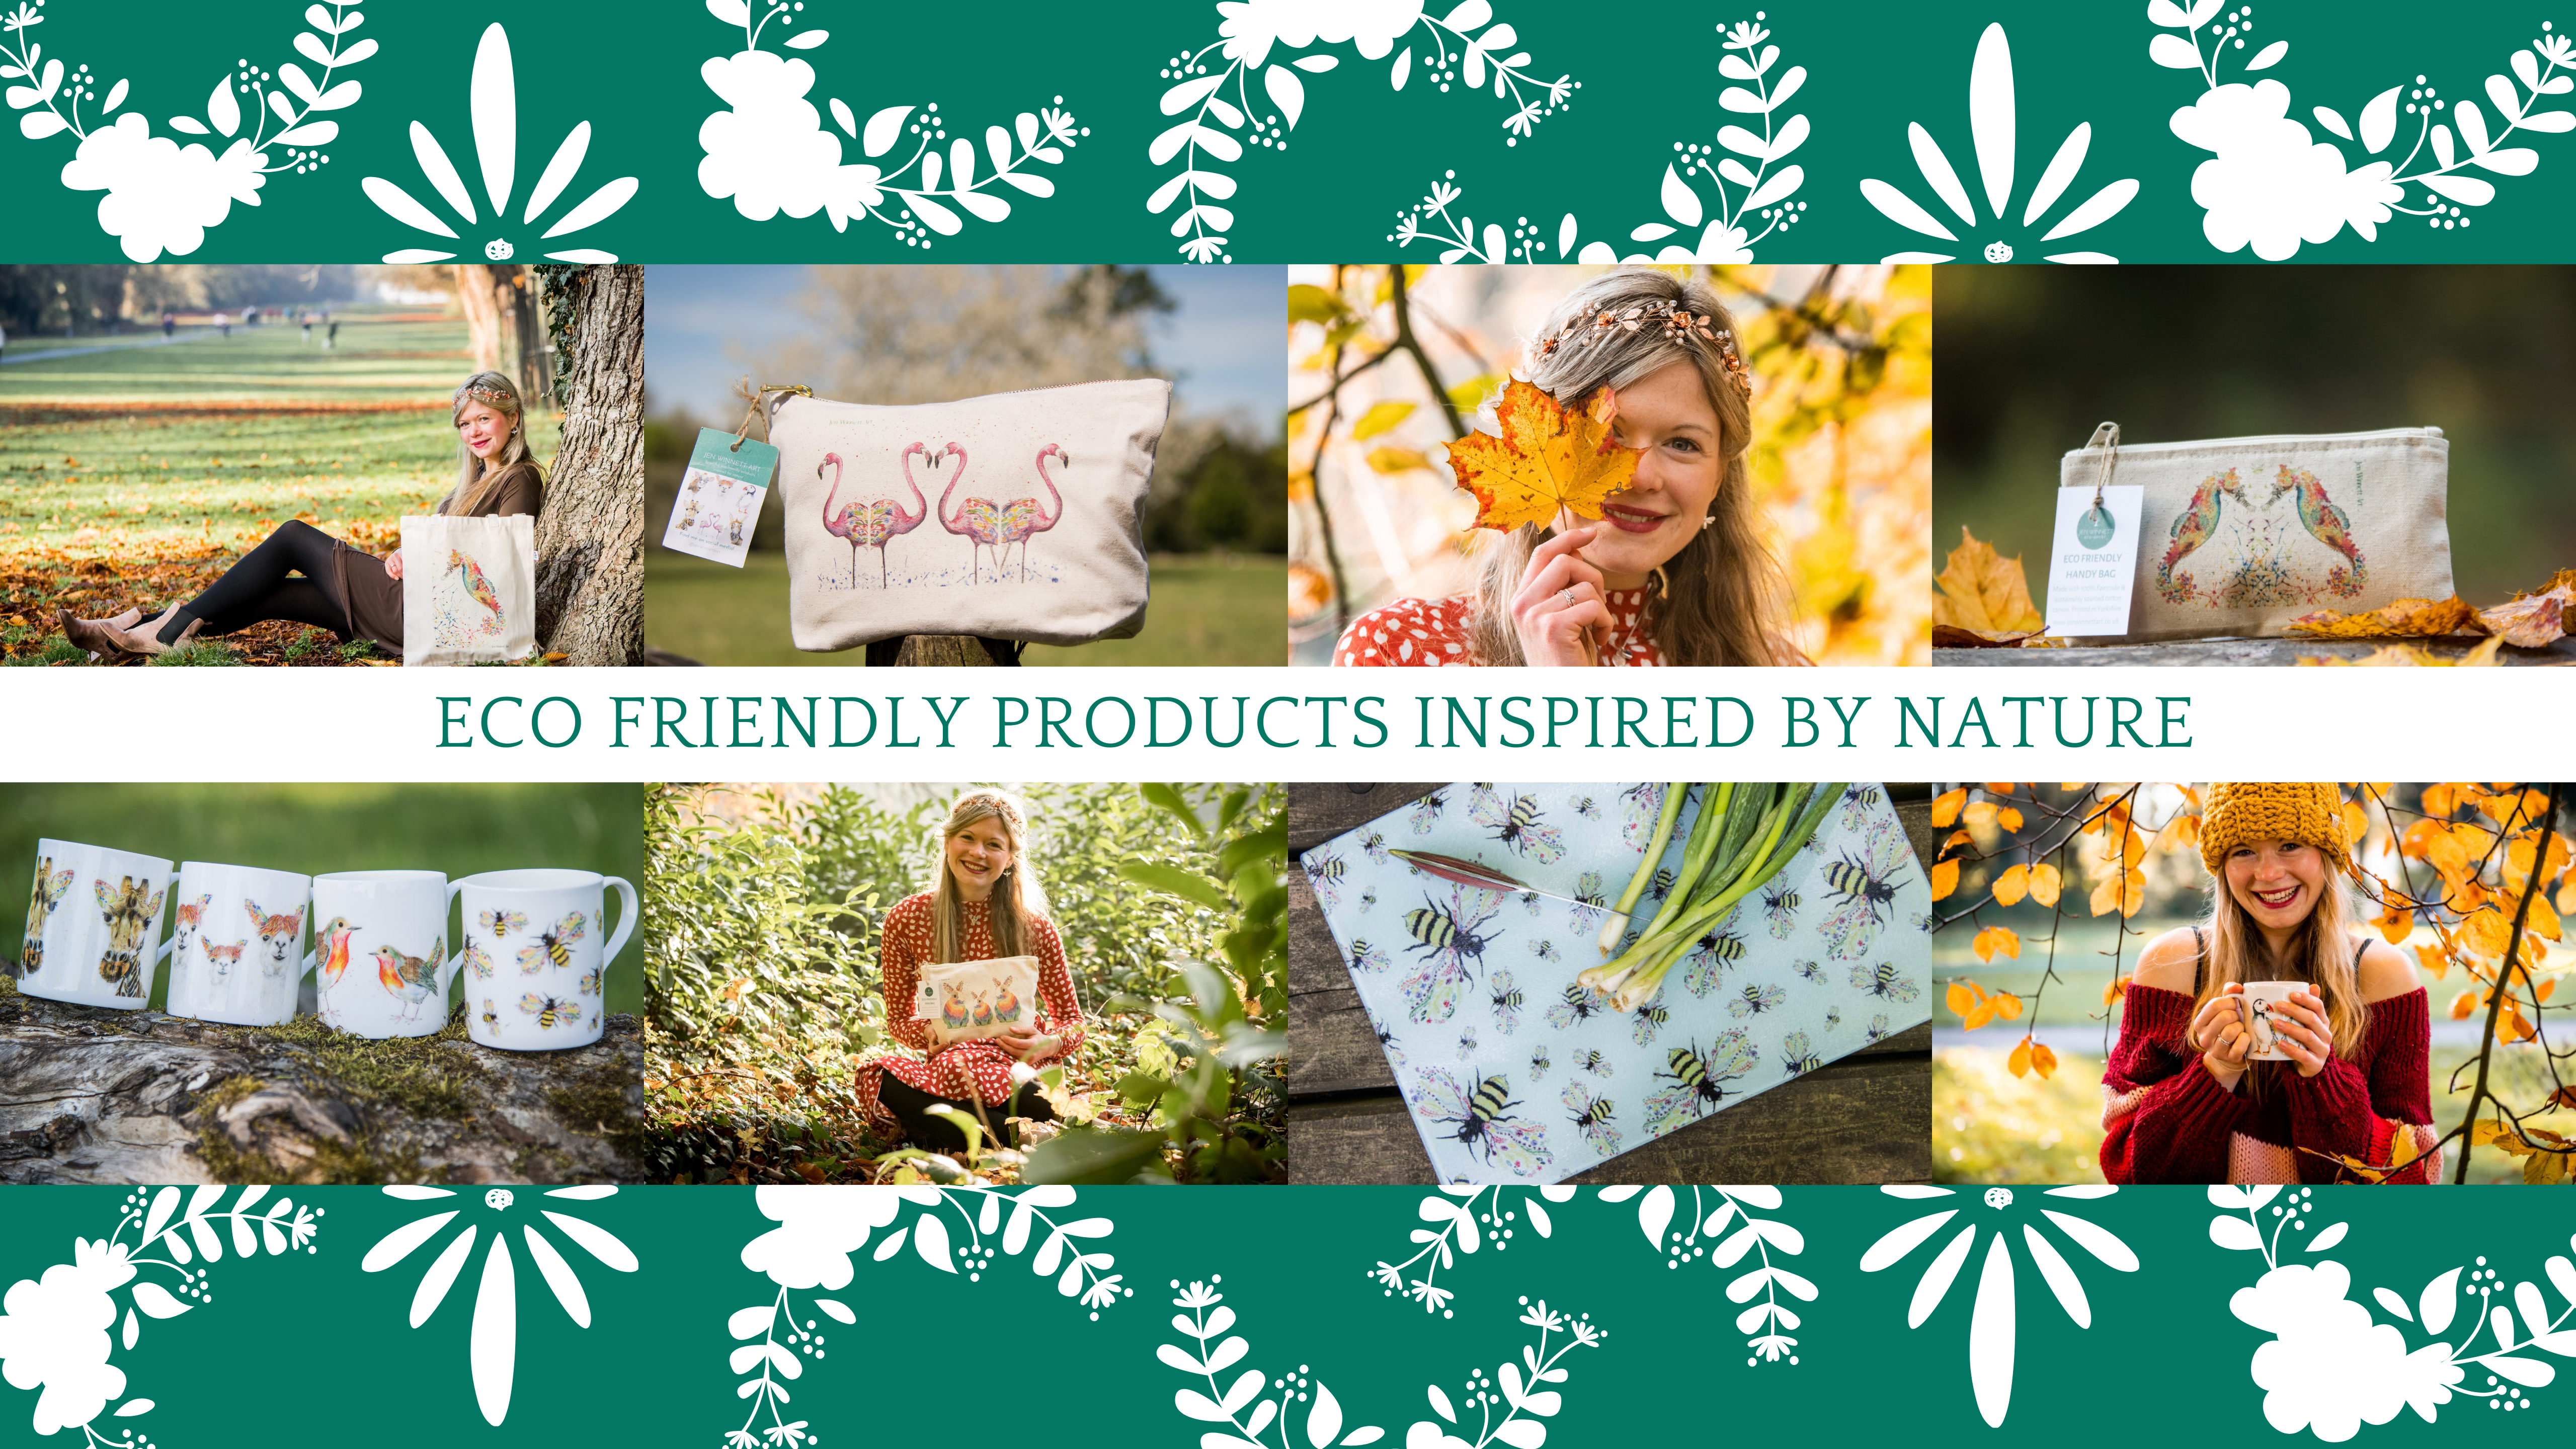 beautiful eco friendly products inspired by nature